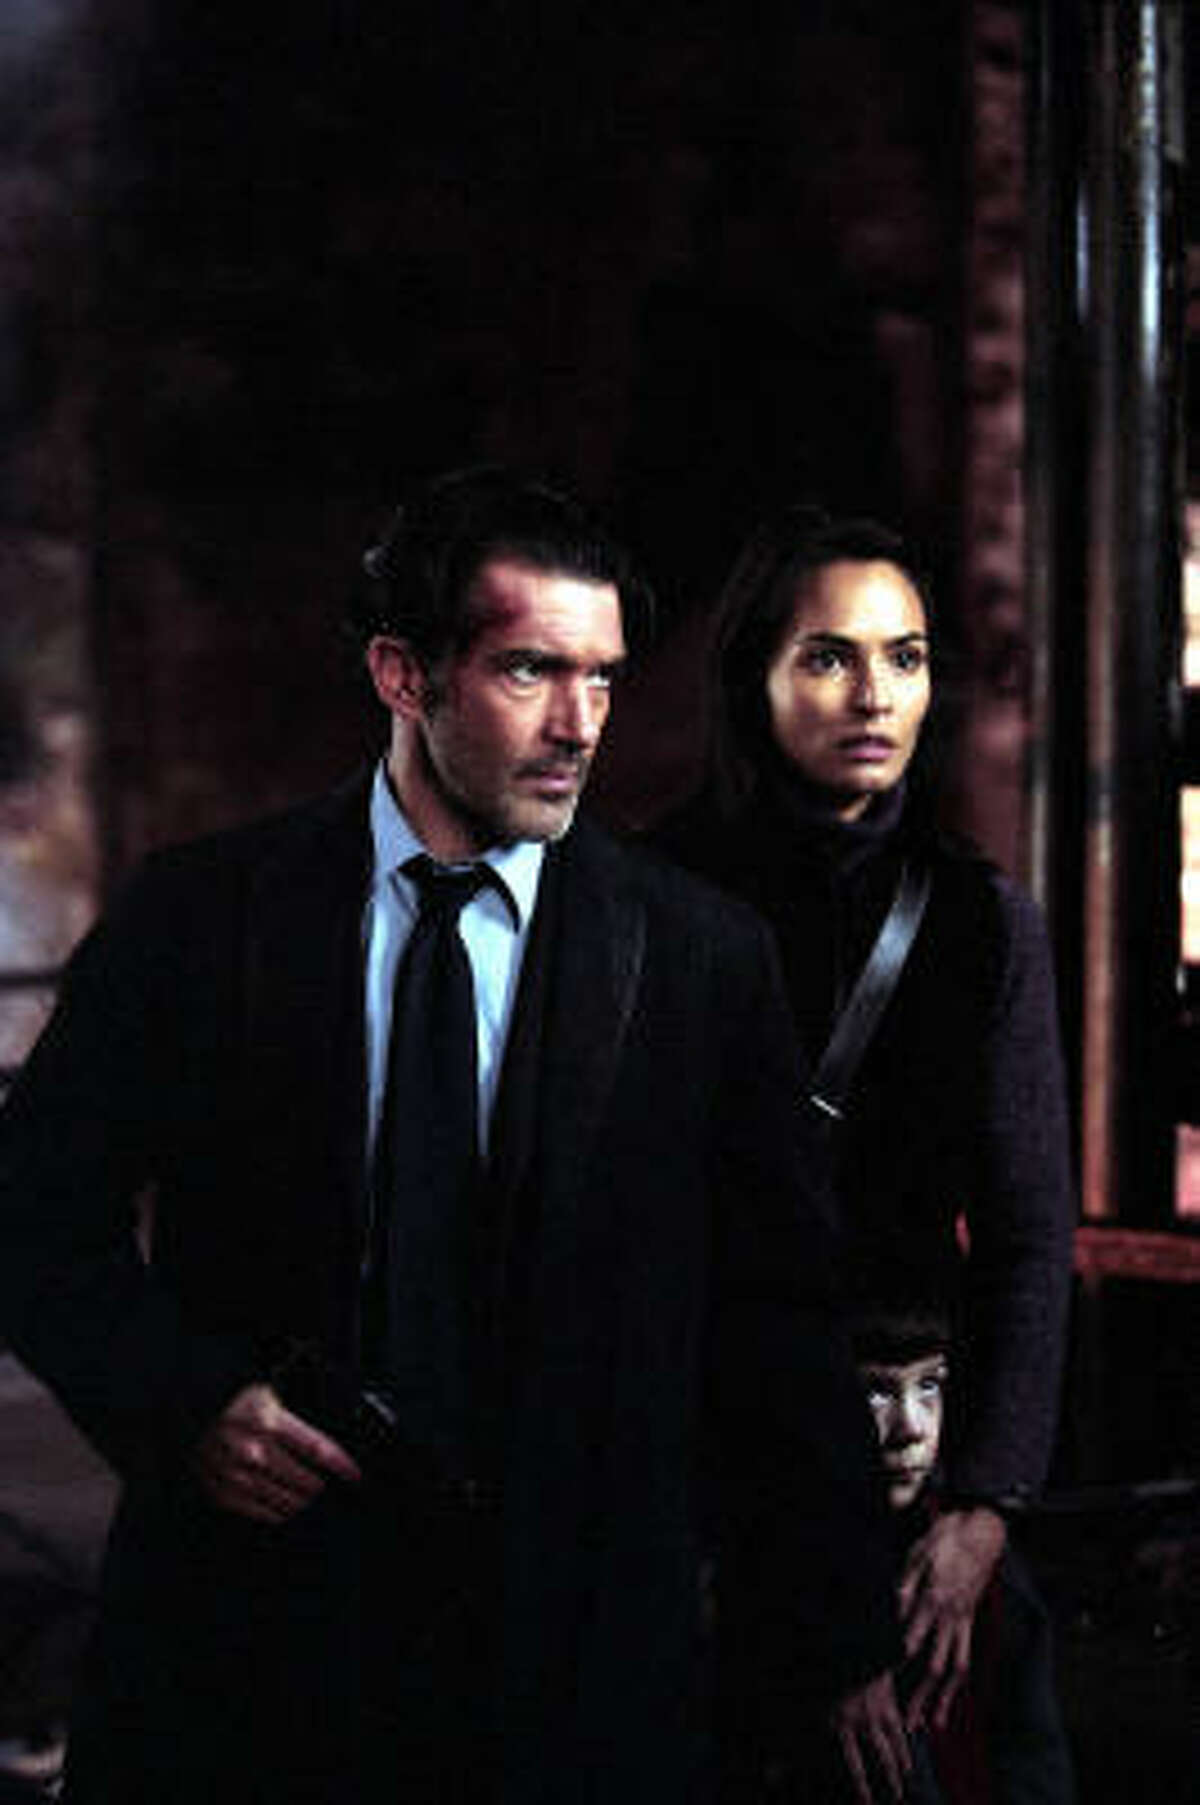 Check out box office bombs from the past ten years: Ballistic: Ecks Vs. Sever starring Antonio Banderas.